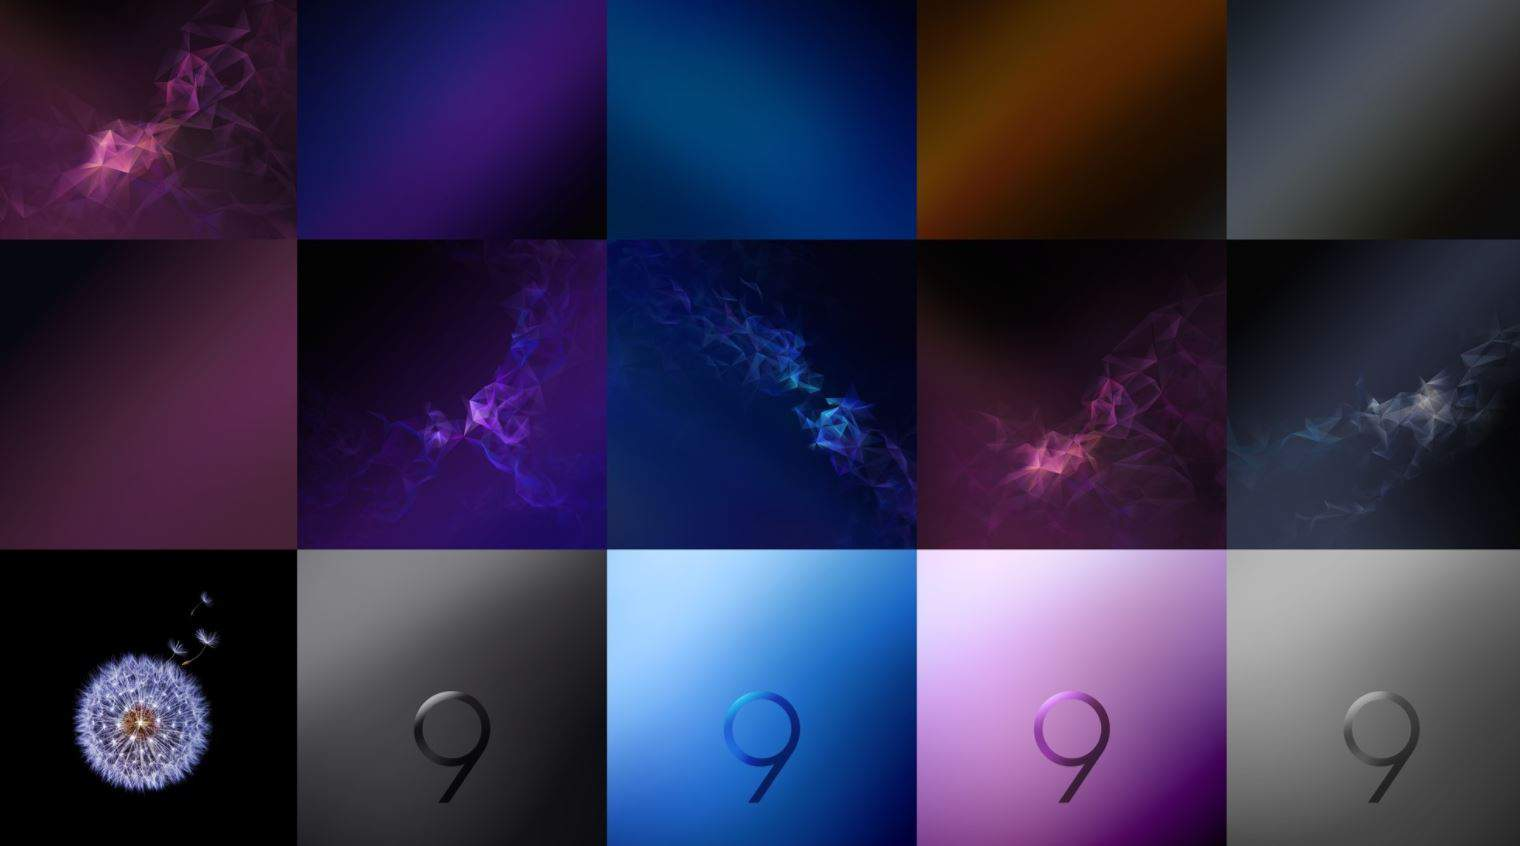 Download  Samsung Galaxy S9   S9 Plus Official Wallpapers   Android News Download  Samsung Galaxy S9   S9 Plus Official Wallpapers